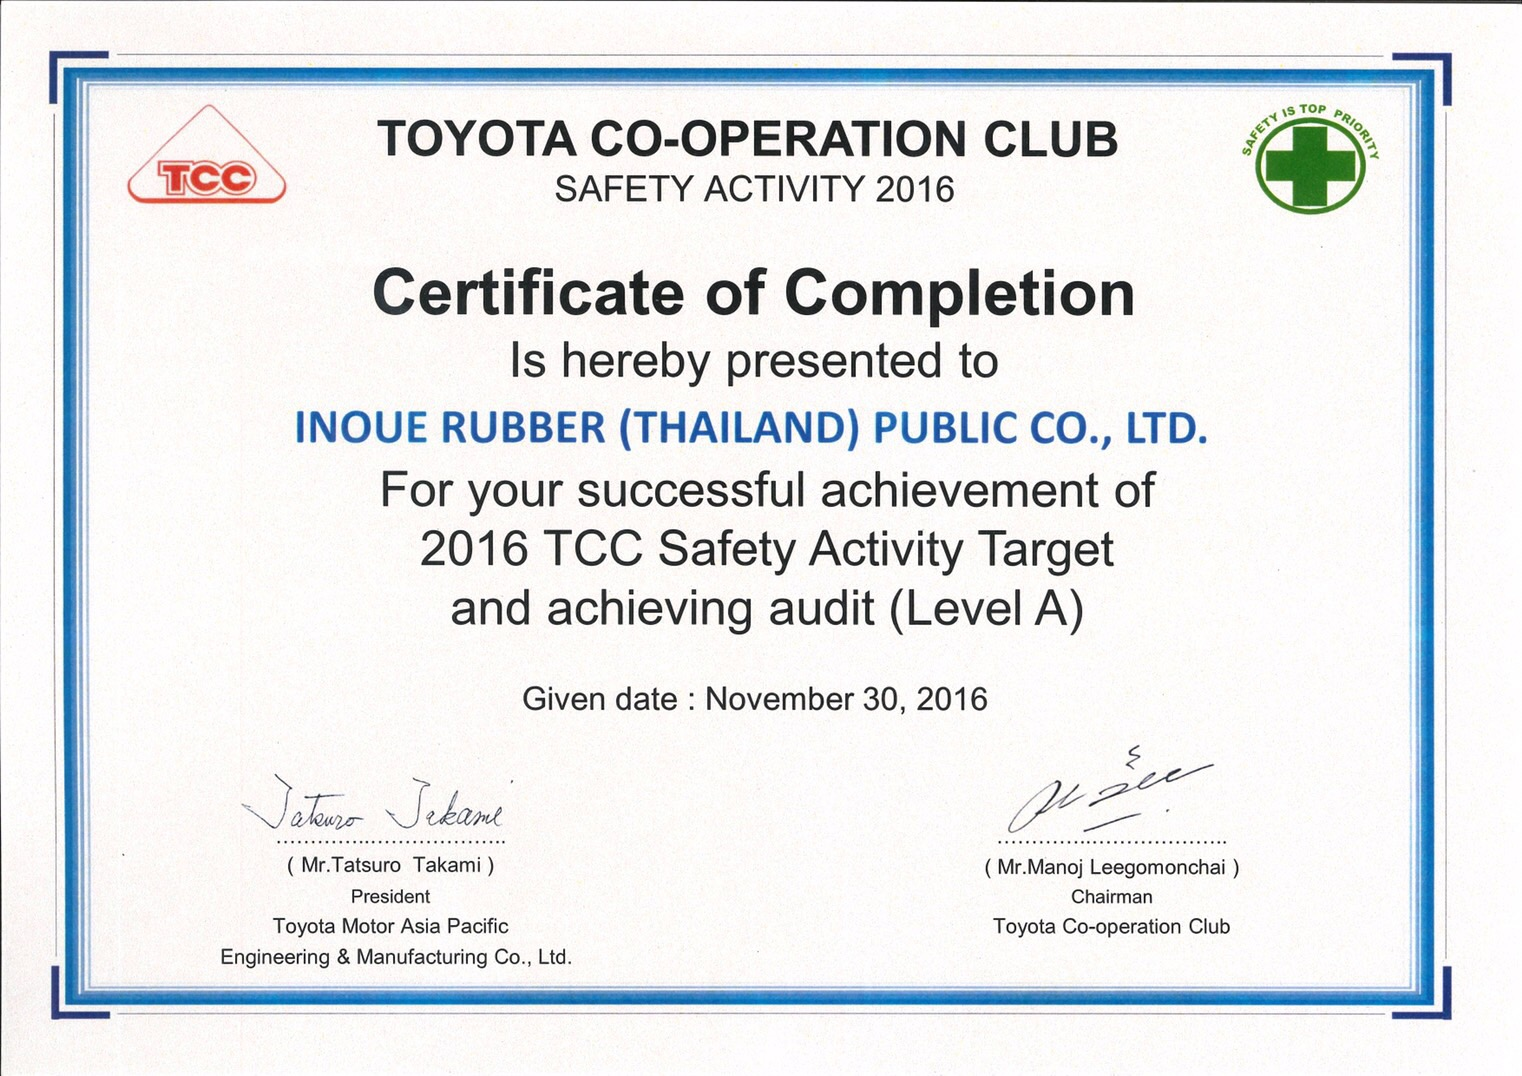 Awards successes certificate of completion 2016 tcc safety activity target and achieving audit level a 1betcityfo Gallery